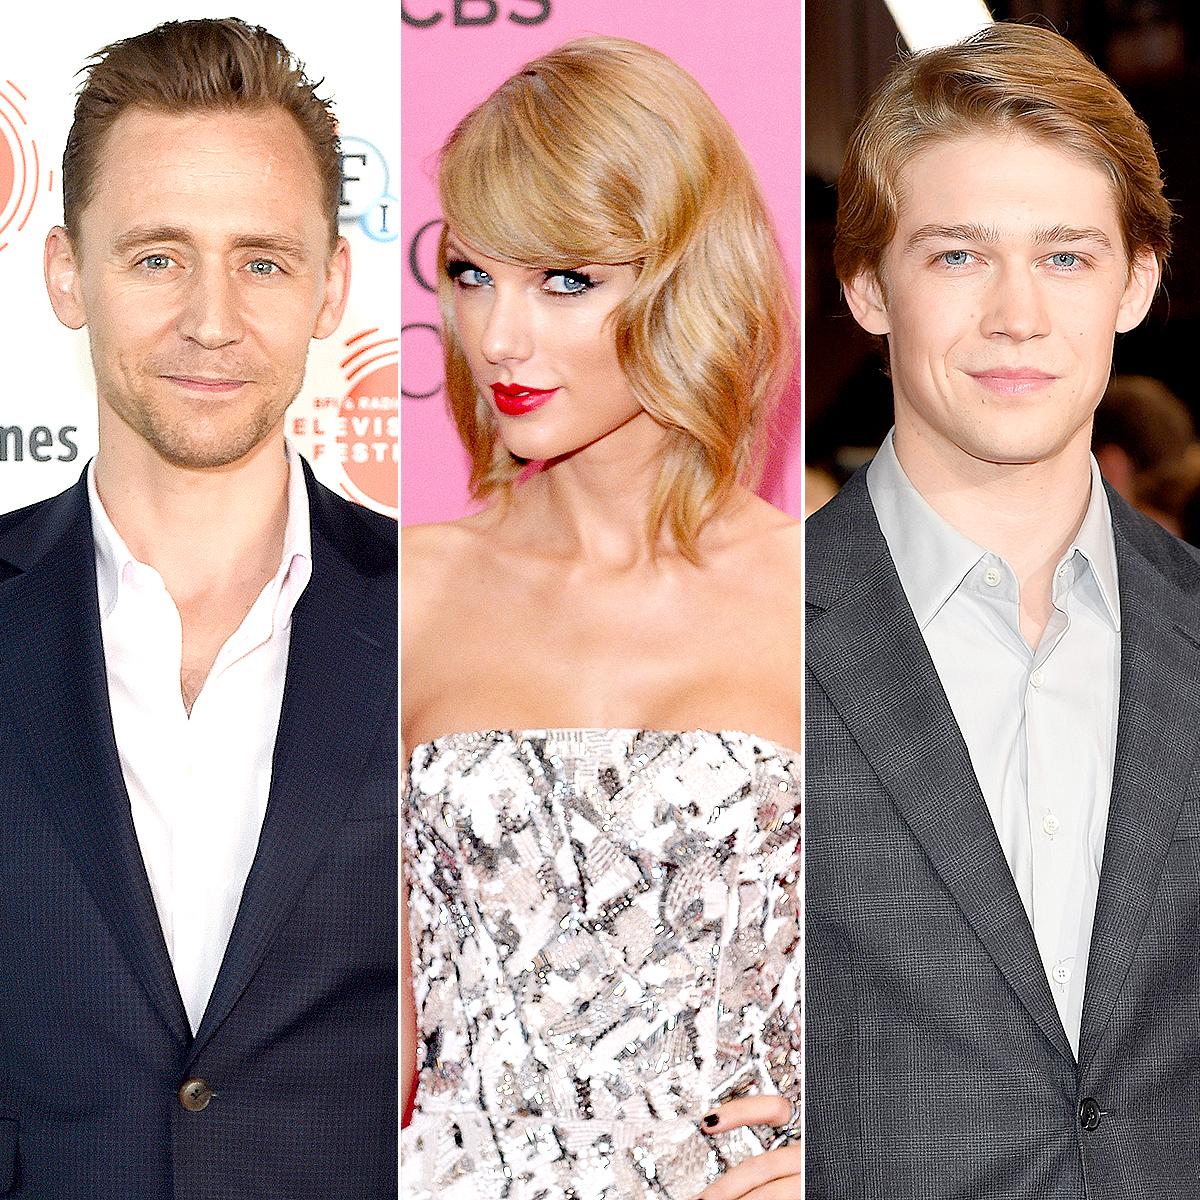 Taylor-Swift-Gorgeous-Tom-Hiddleston-Joe-Alwyn